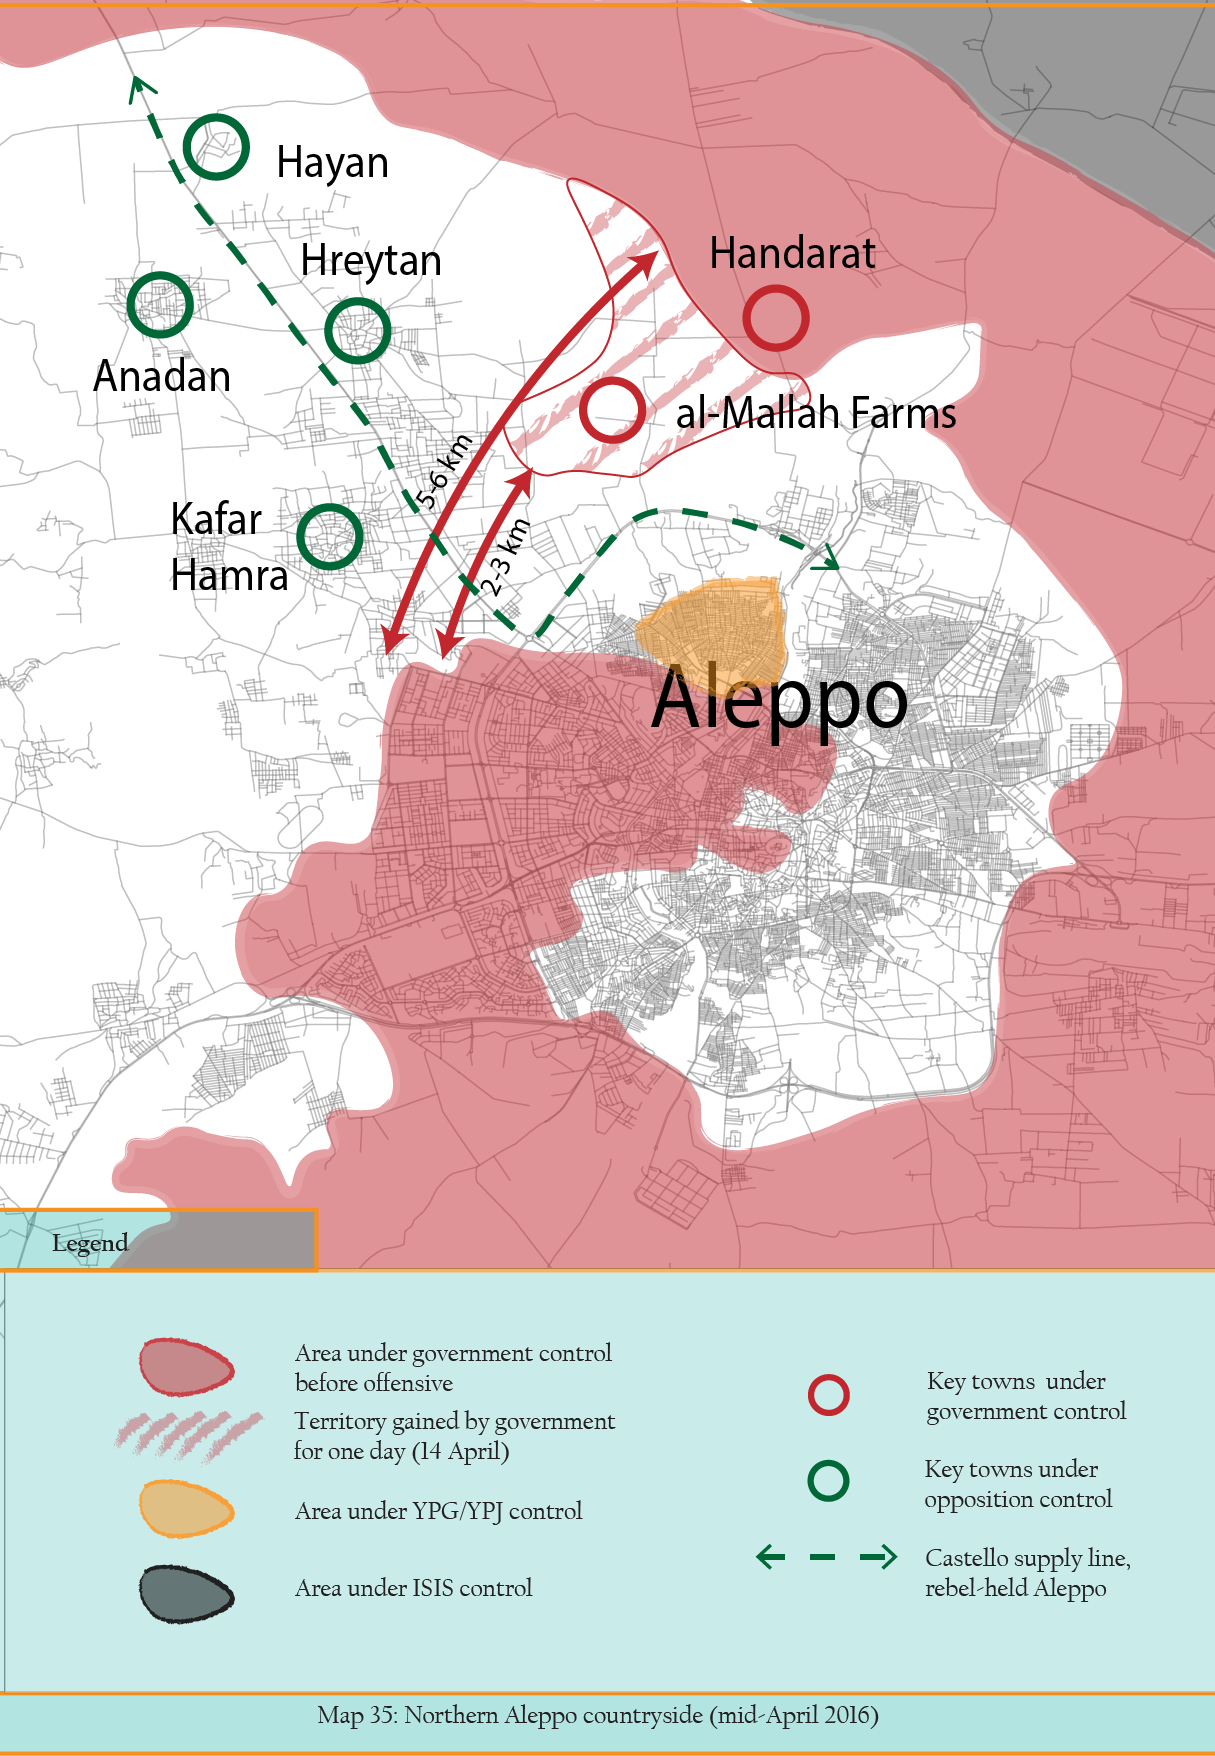 MAP 35 Aleppo mid-April